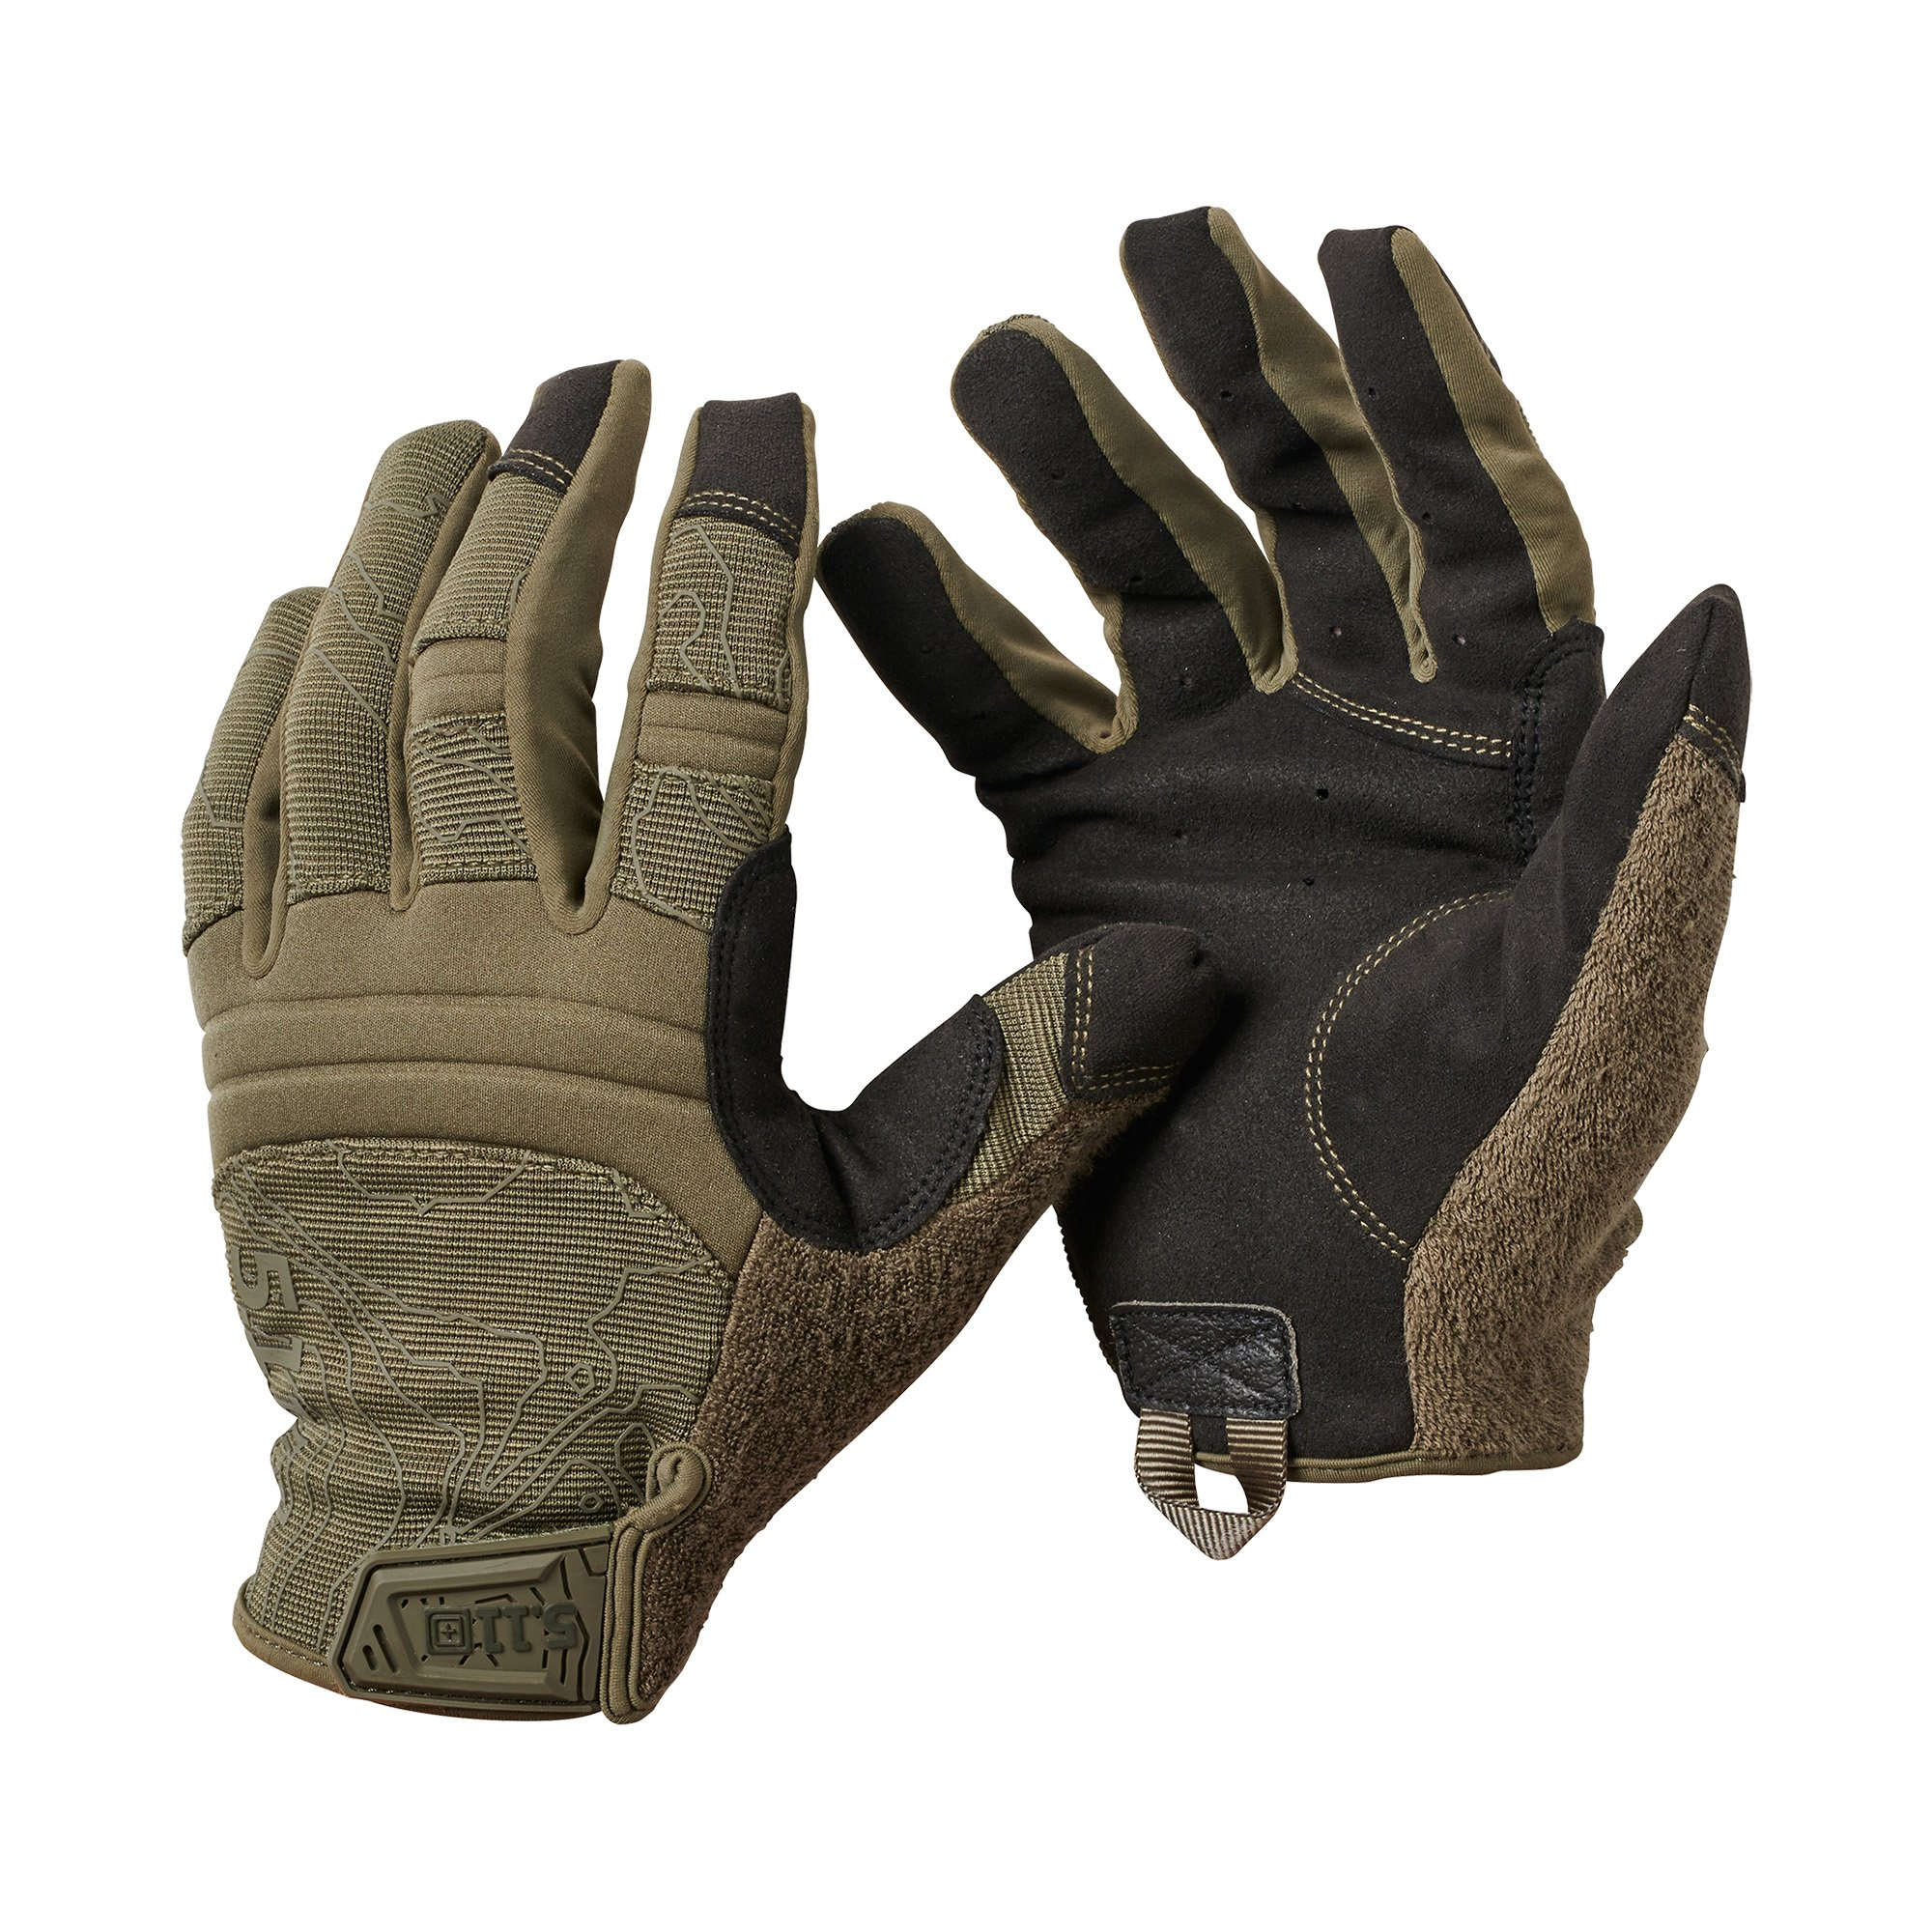 COMPETITION SHOOTING GLOVE – Ranger Green